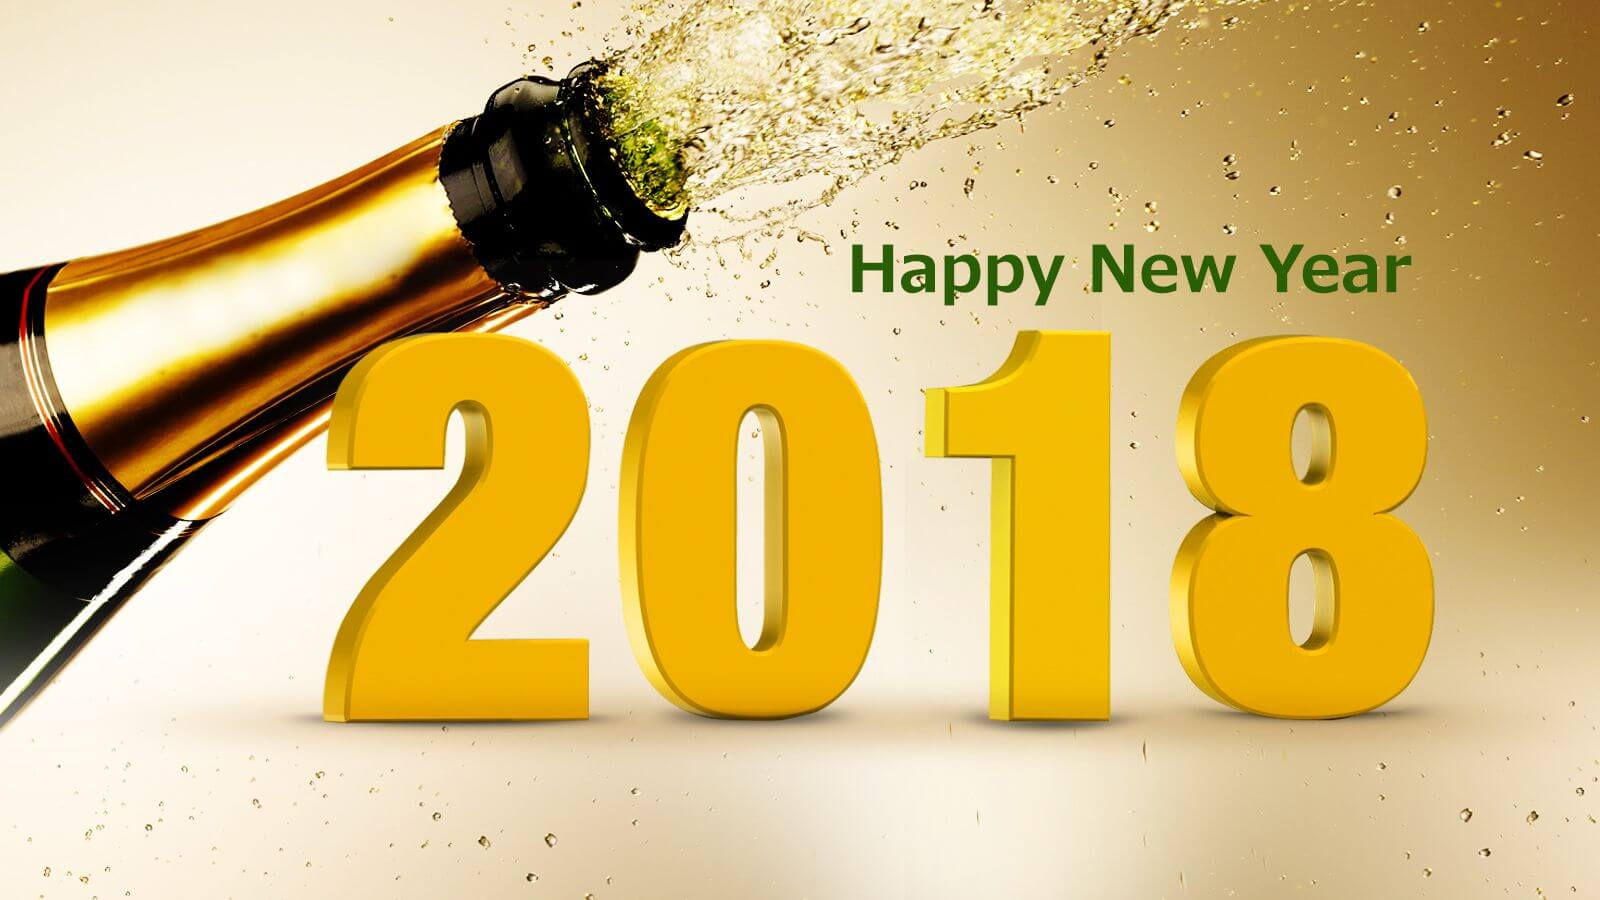 Happy New Year 2018 Images and HD Photos